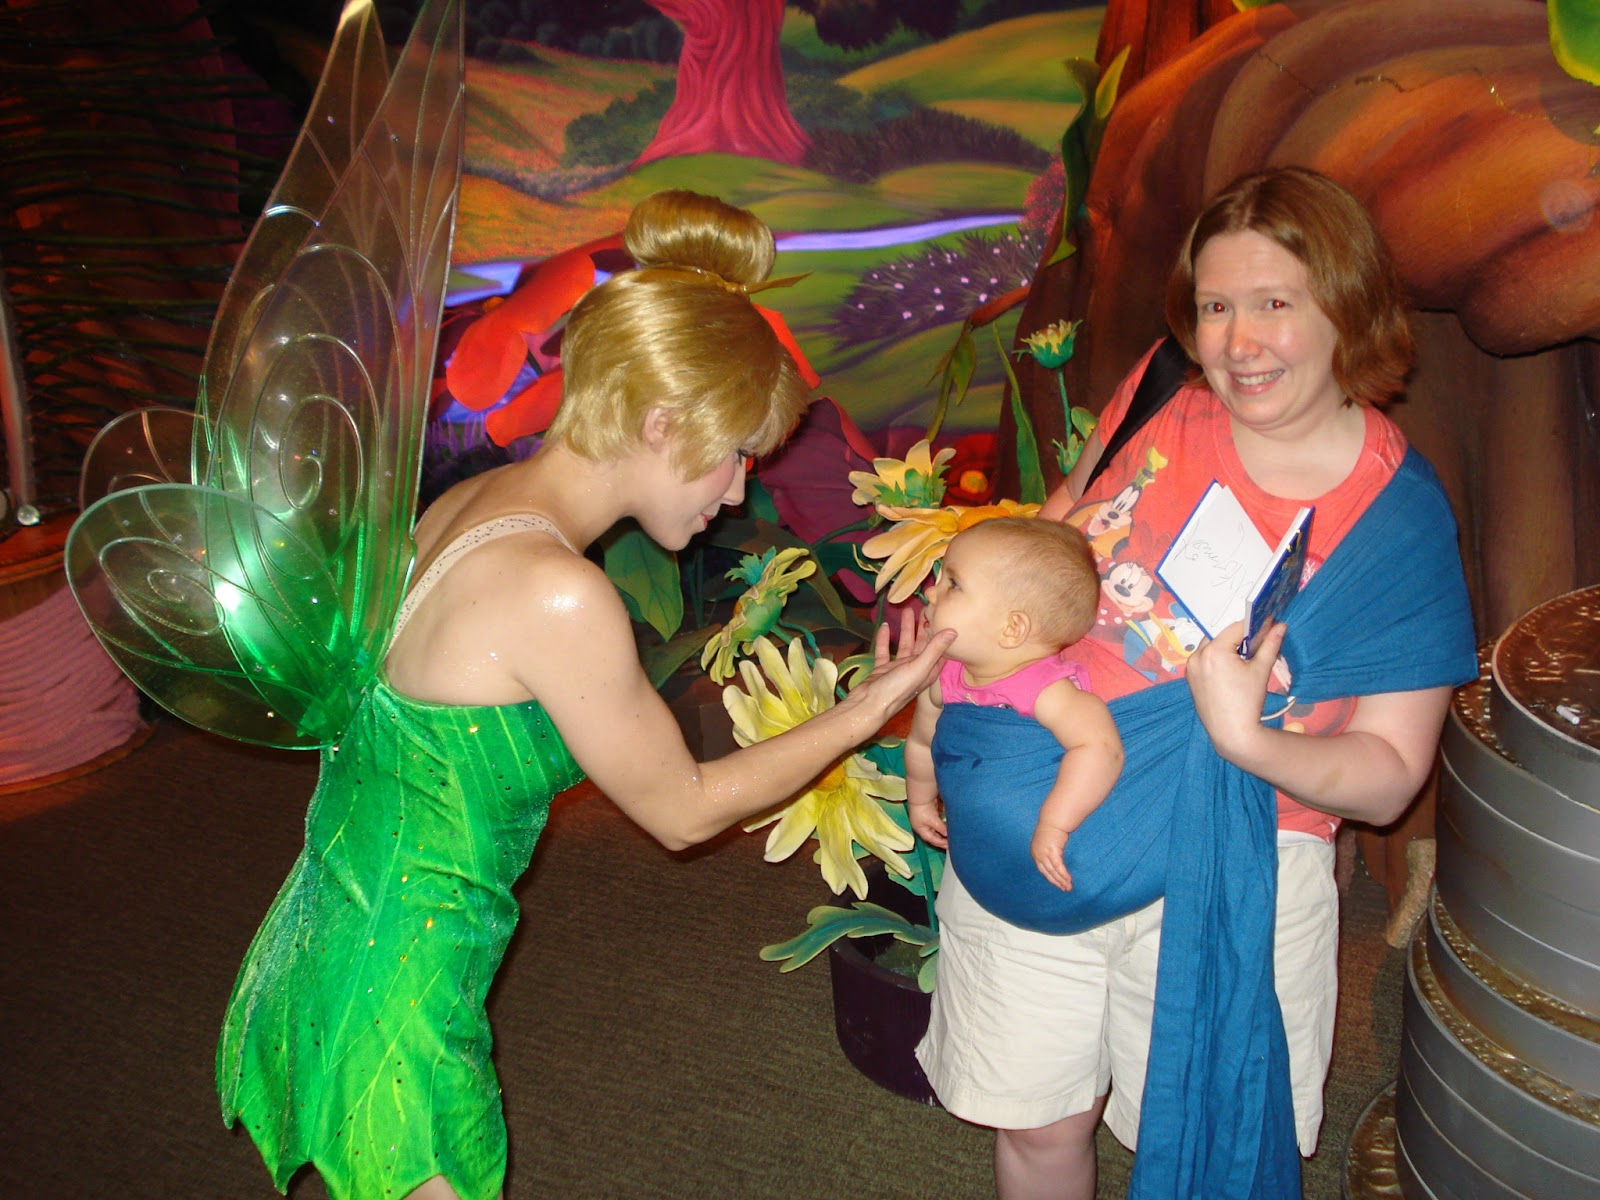 Meeting Tinkerbell at the Magic Kingdom